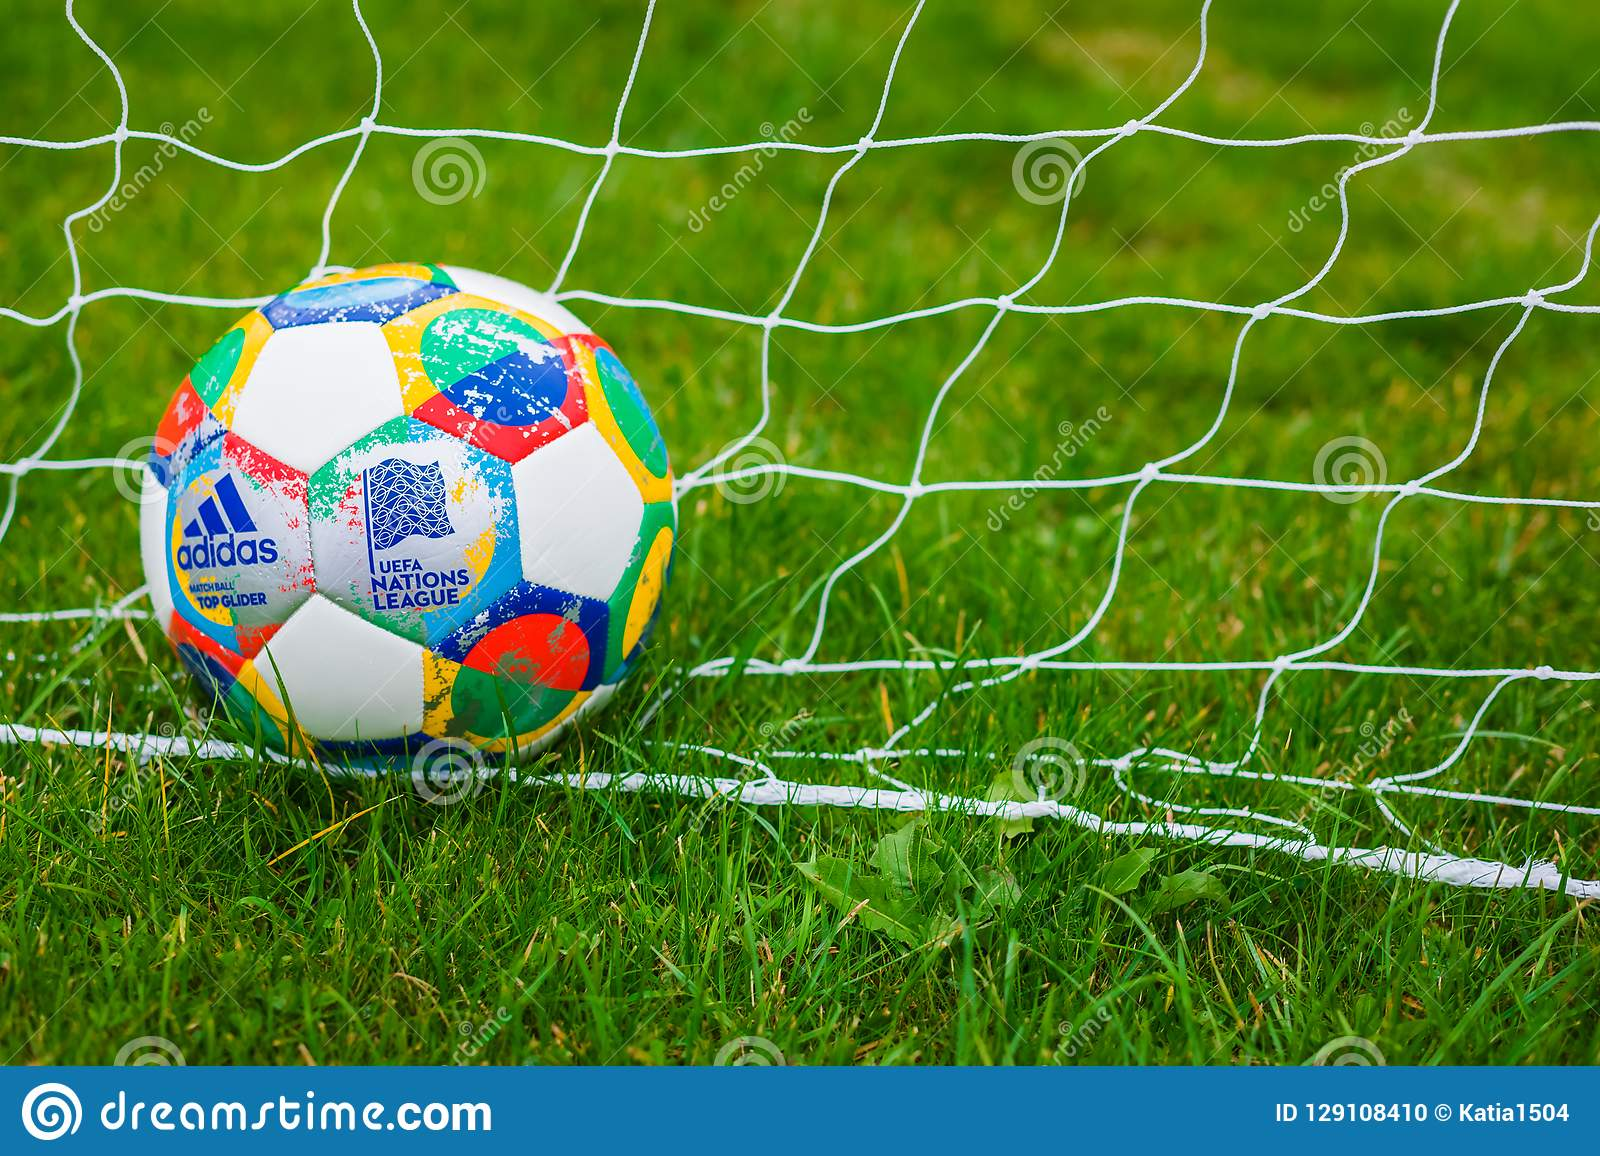 Moscow Russia October 7 2018 Adidas Uefa Nations League Official Match Ball Glider On The Grass Banner Editorial Image Image Of Colorful Circle 129108410